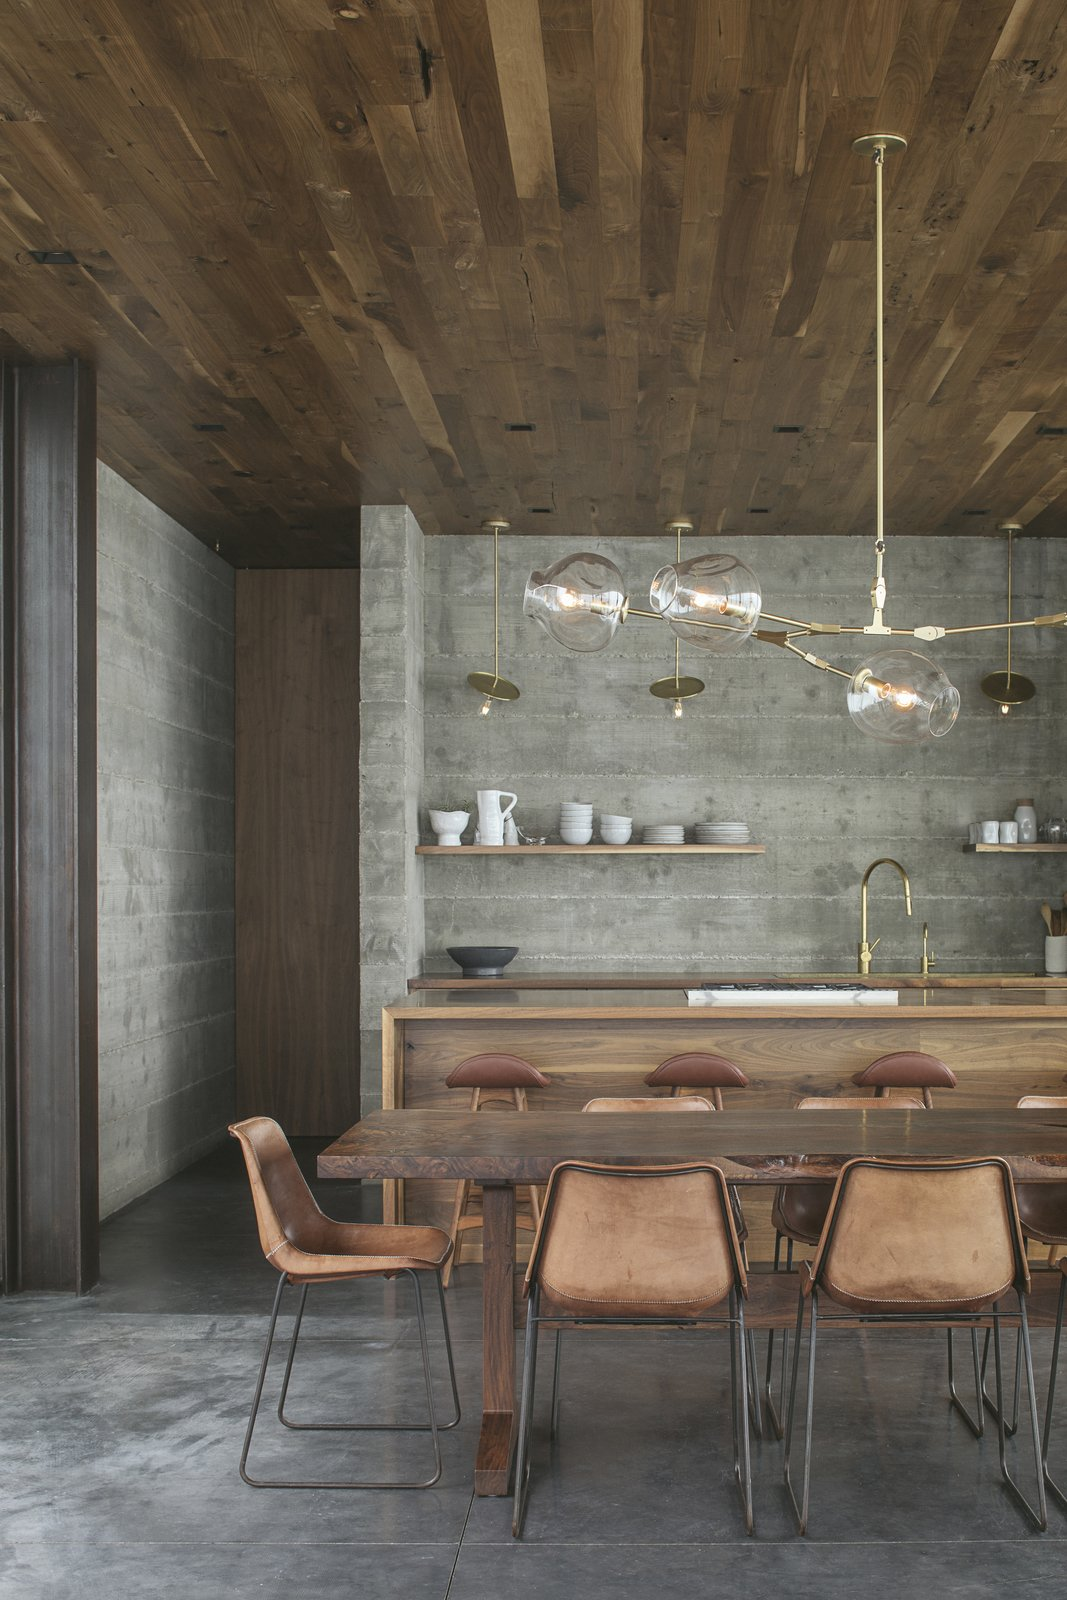 Dining, Table, Pendant, Chair, Concrete, Bar, and Stools Handmade leather Fernando chairs by Jayson Home surround a live-edge custom walnut table by Ben Riddering in the dining area.   Best Dining Photos from A Gorgeous, Off-Grid Guesthouse Perches Lightly on a California Ranch